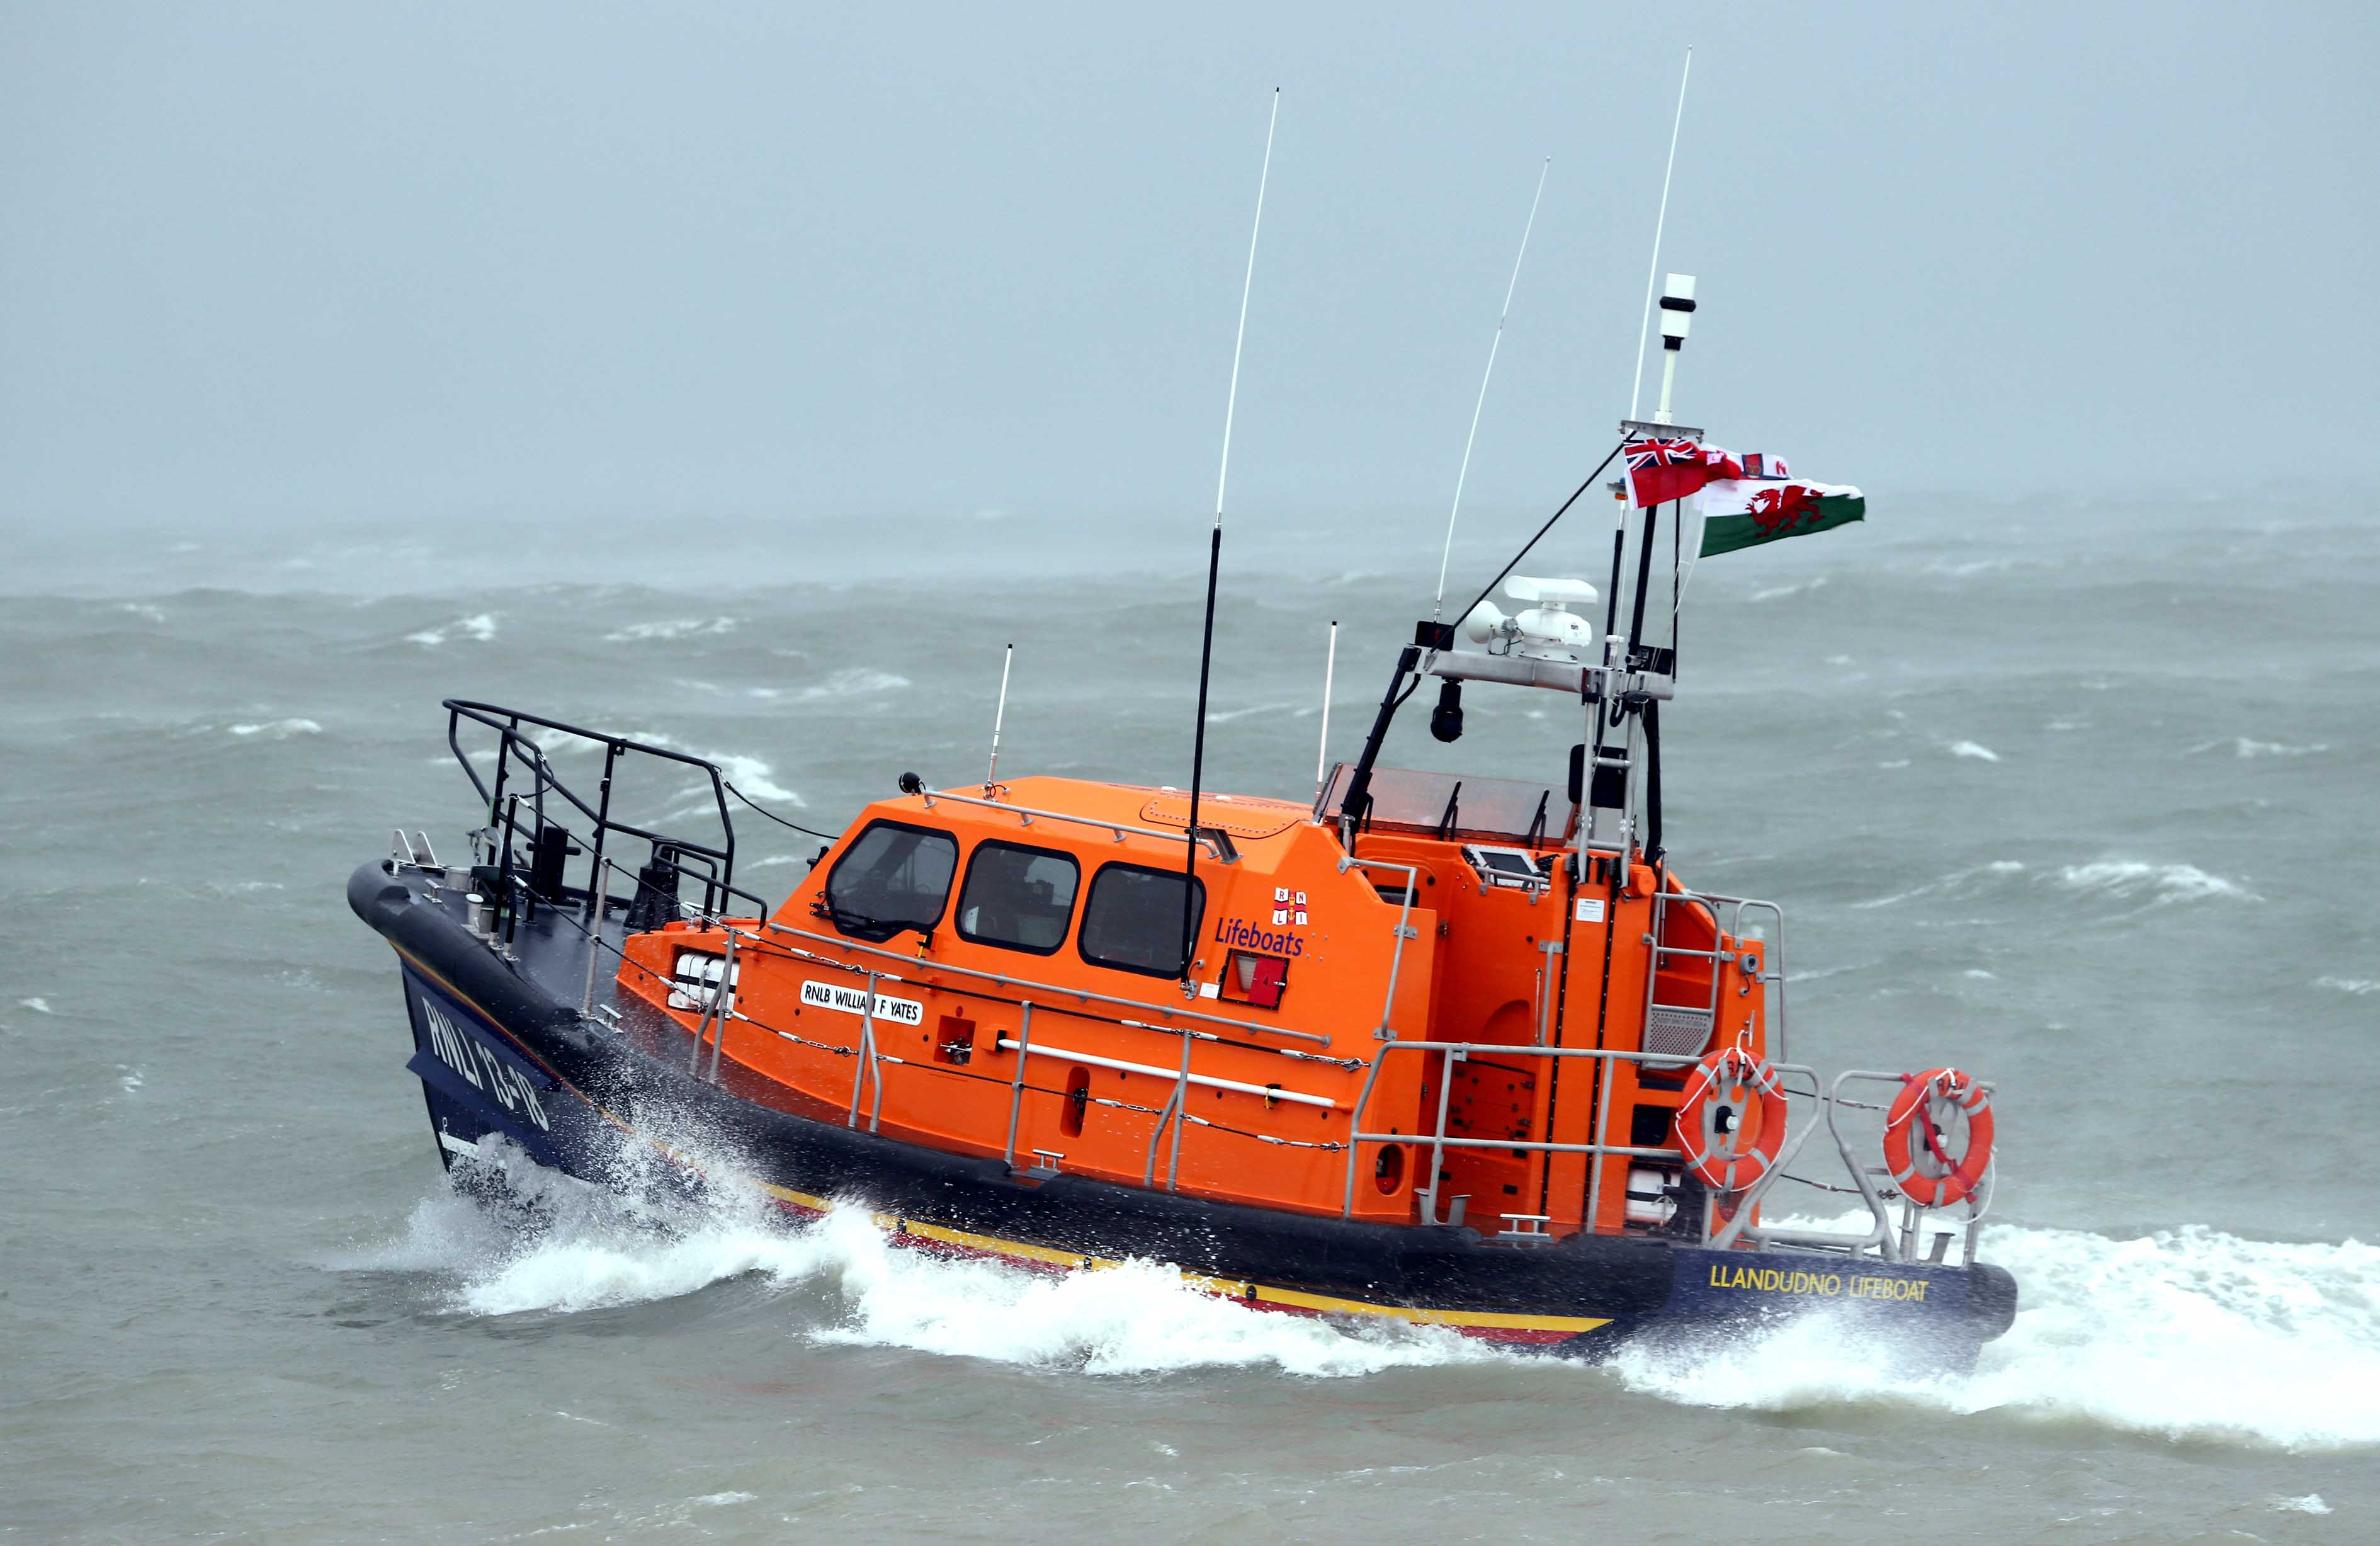 In 2017 lifeboat crews from Flint to Penarth launched 1,082 times.Pictured is Llandudno RNLI lifeboat.